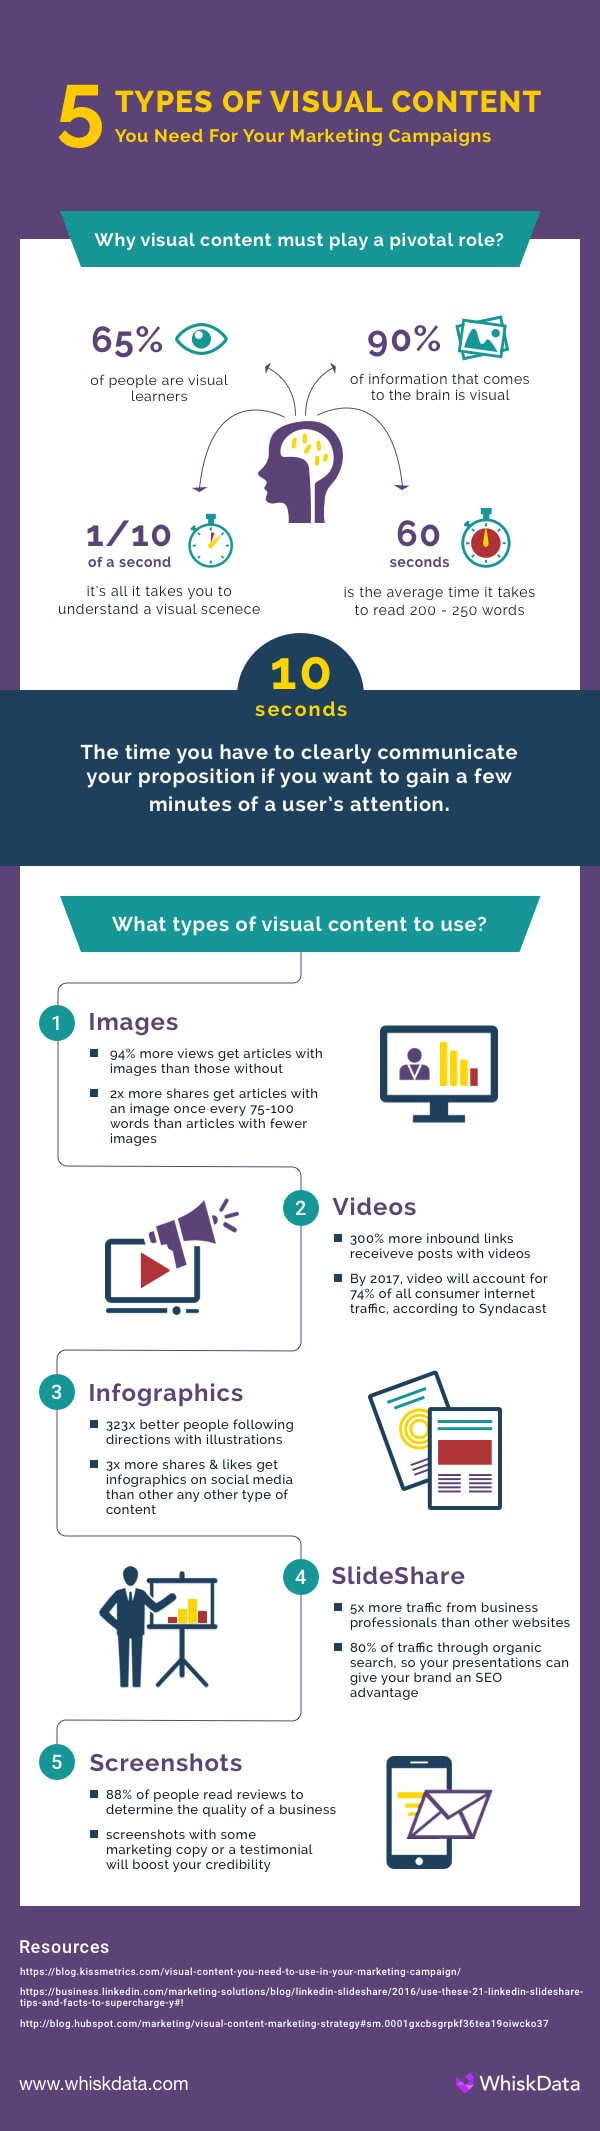 5 Types of Visual Content You Need for Your Marketing Campaign [Infographic]